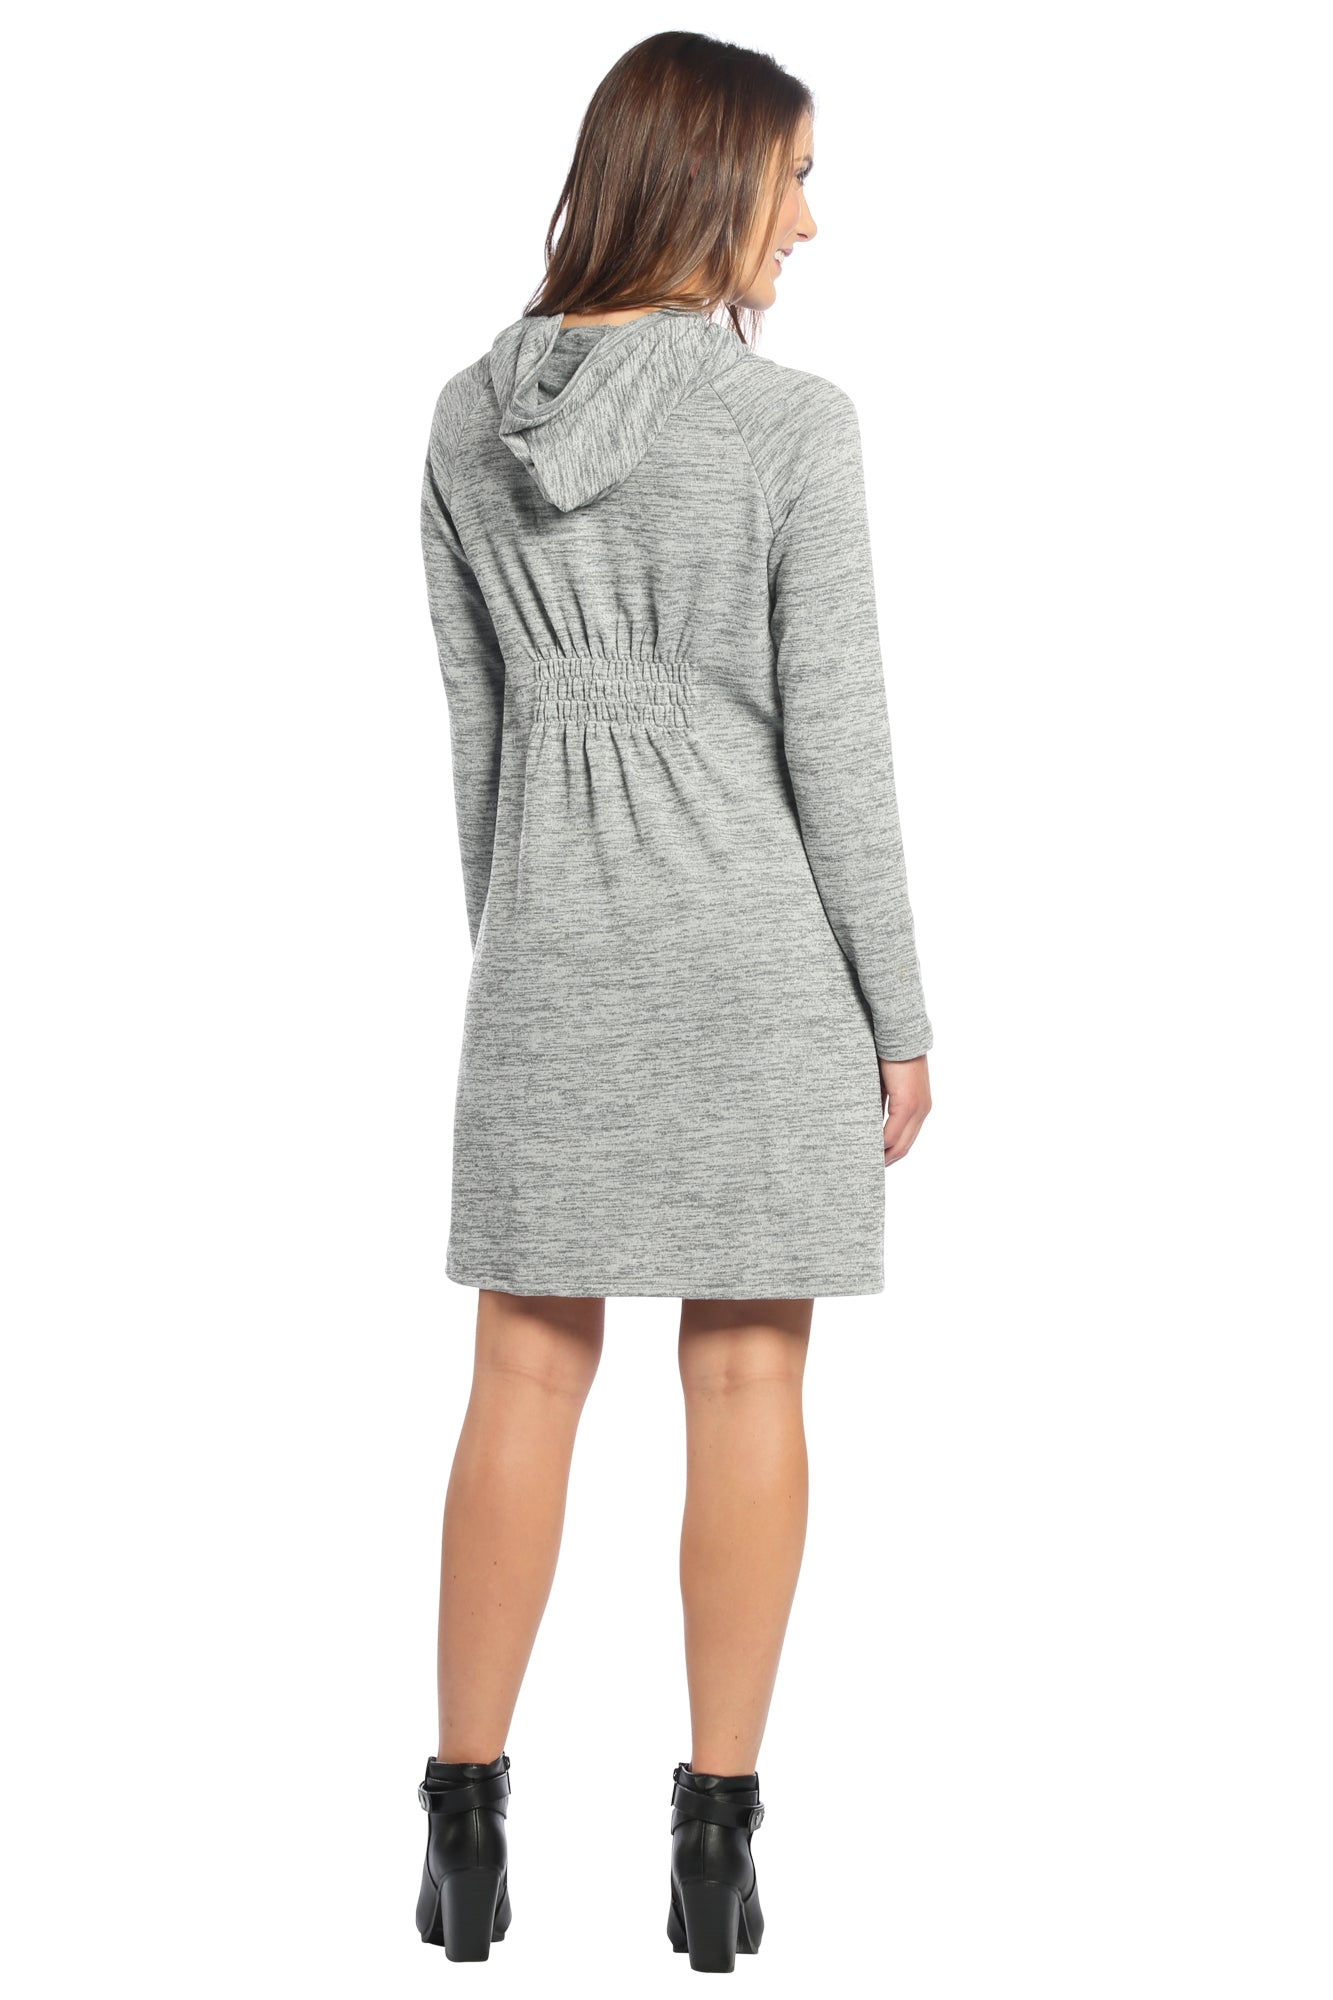 Drawstring Cowl Neck Sweater Dress with Hoodie in Heather Grey